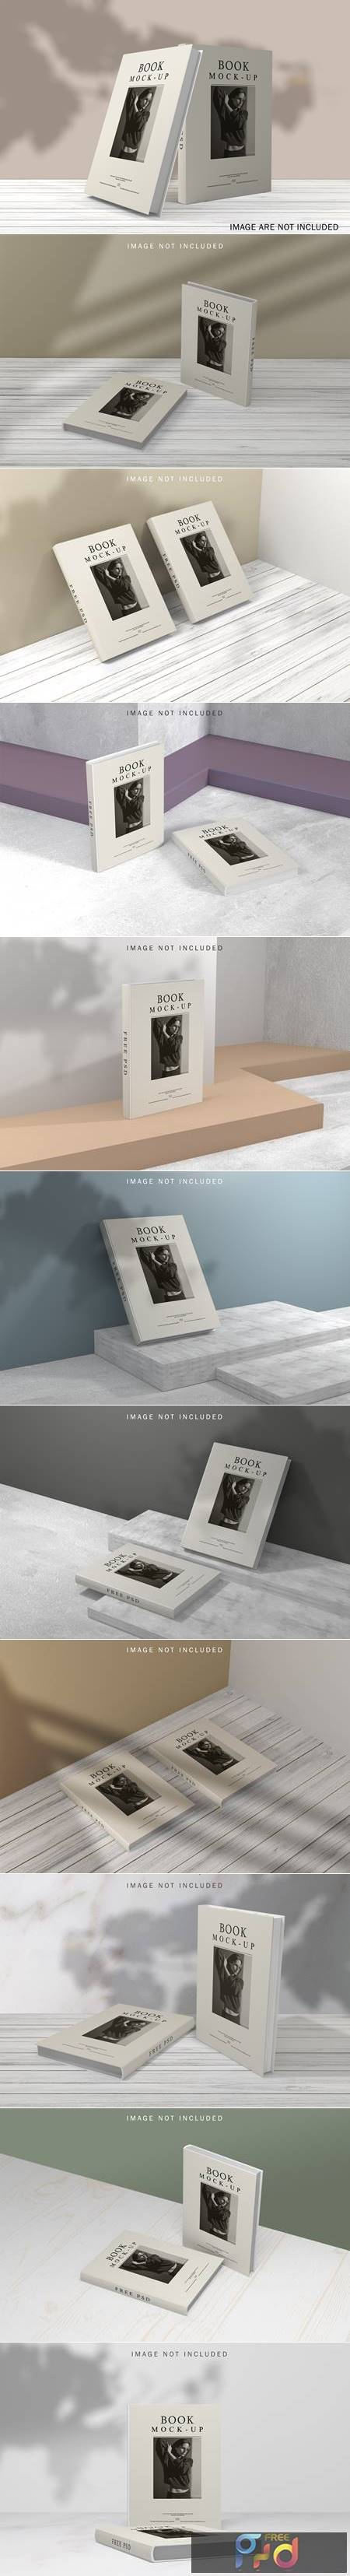 Book cover mockup with shadow overlay 1